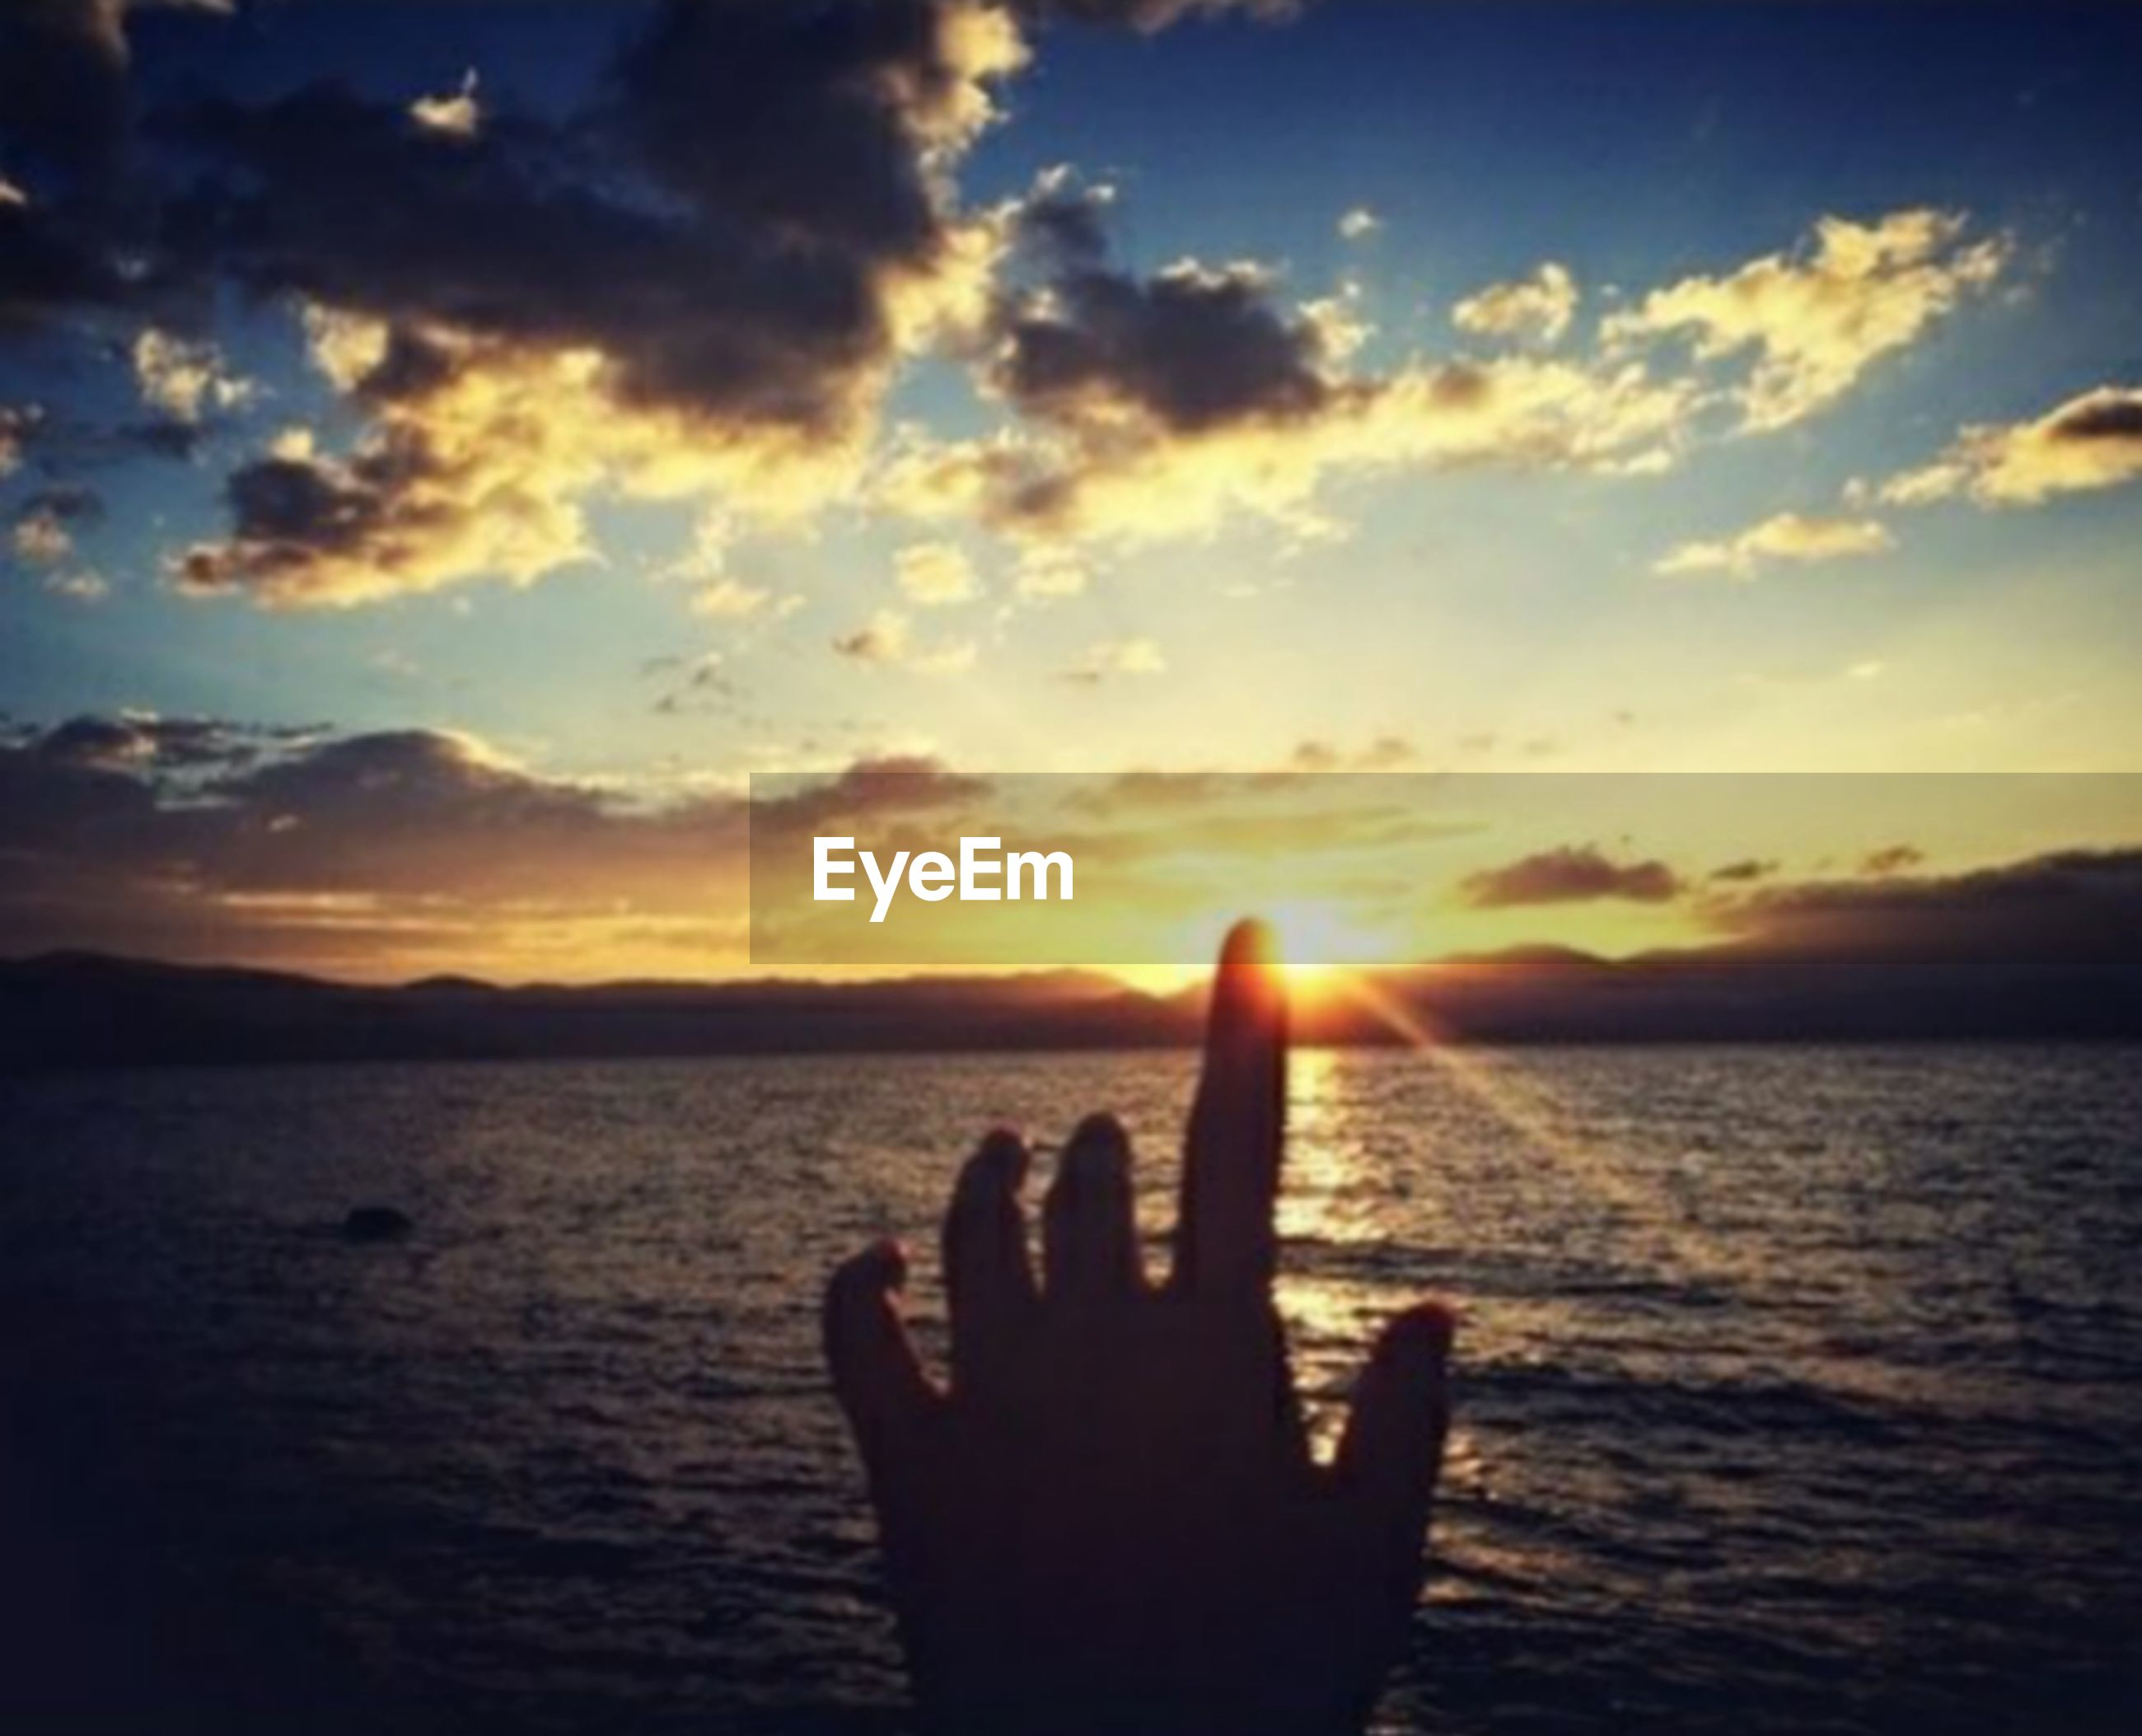 human hand, sunset, sea, human body part, human finger, sky, cloud - sky, horizon over water, one person, silhouette, water, sunlight, nature, outdoors, beach, beauty in nature, scenics, people, close-up, day, adult, adults only